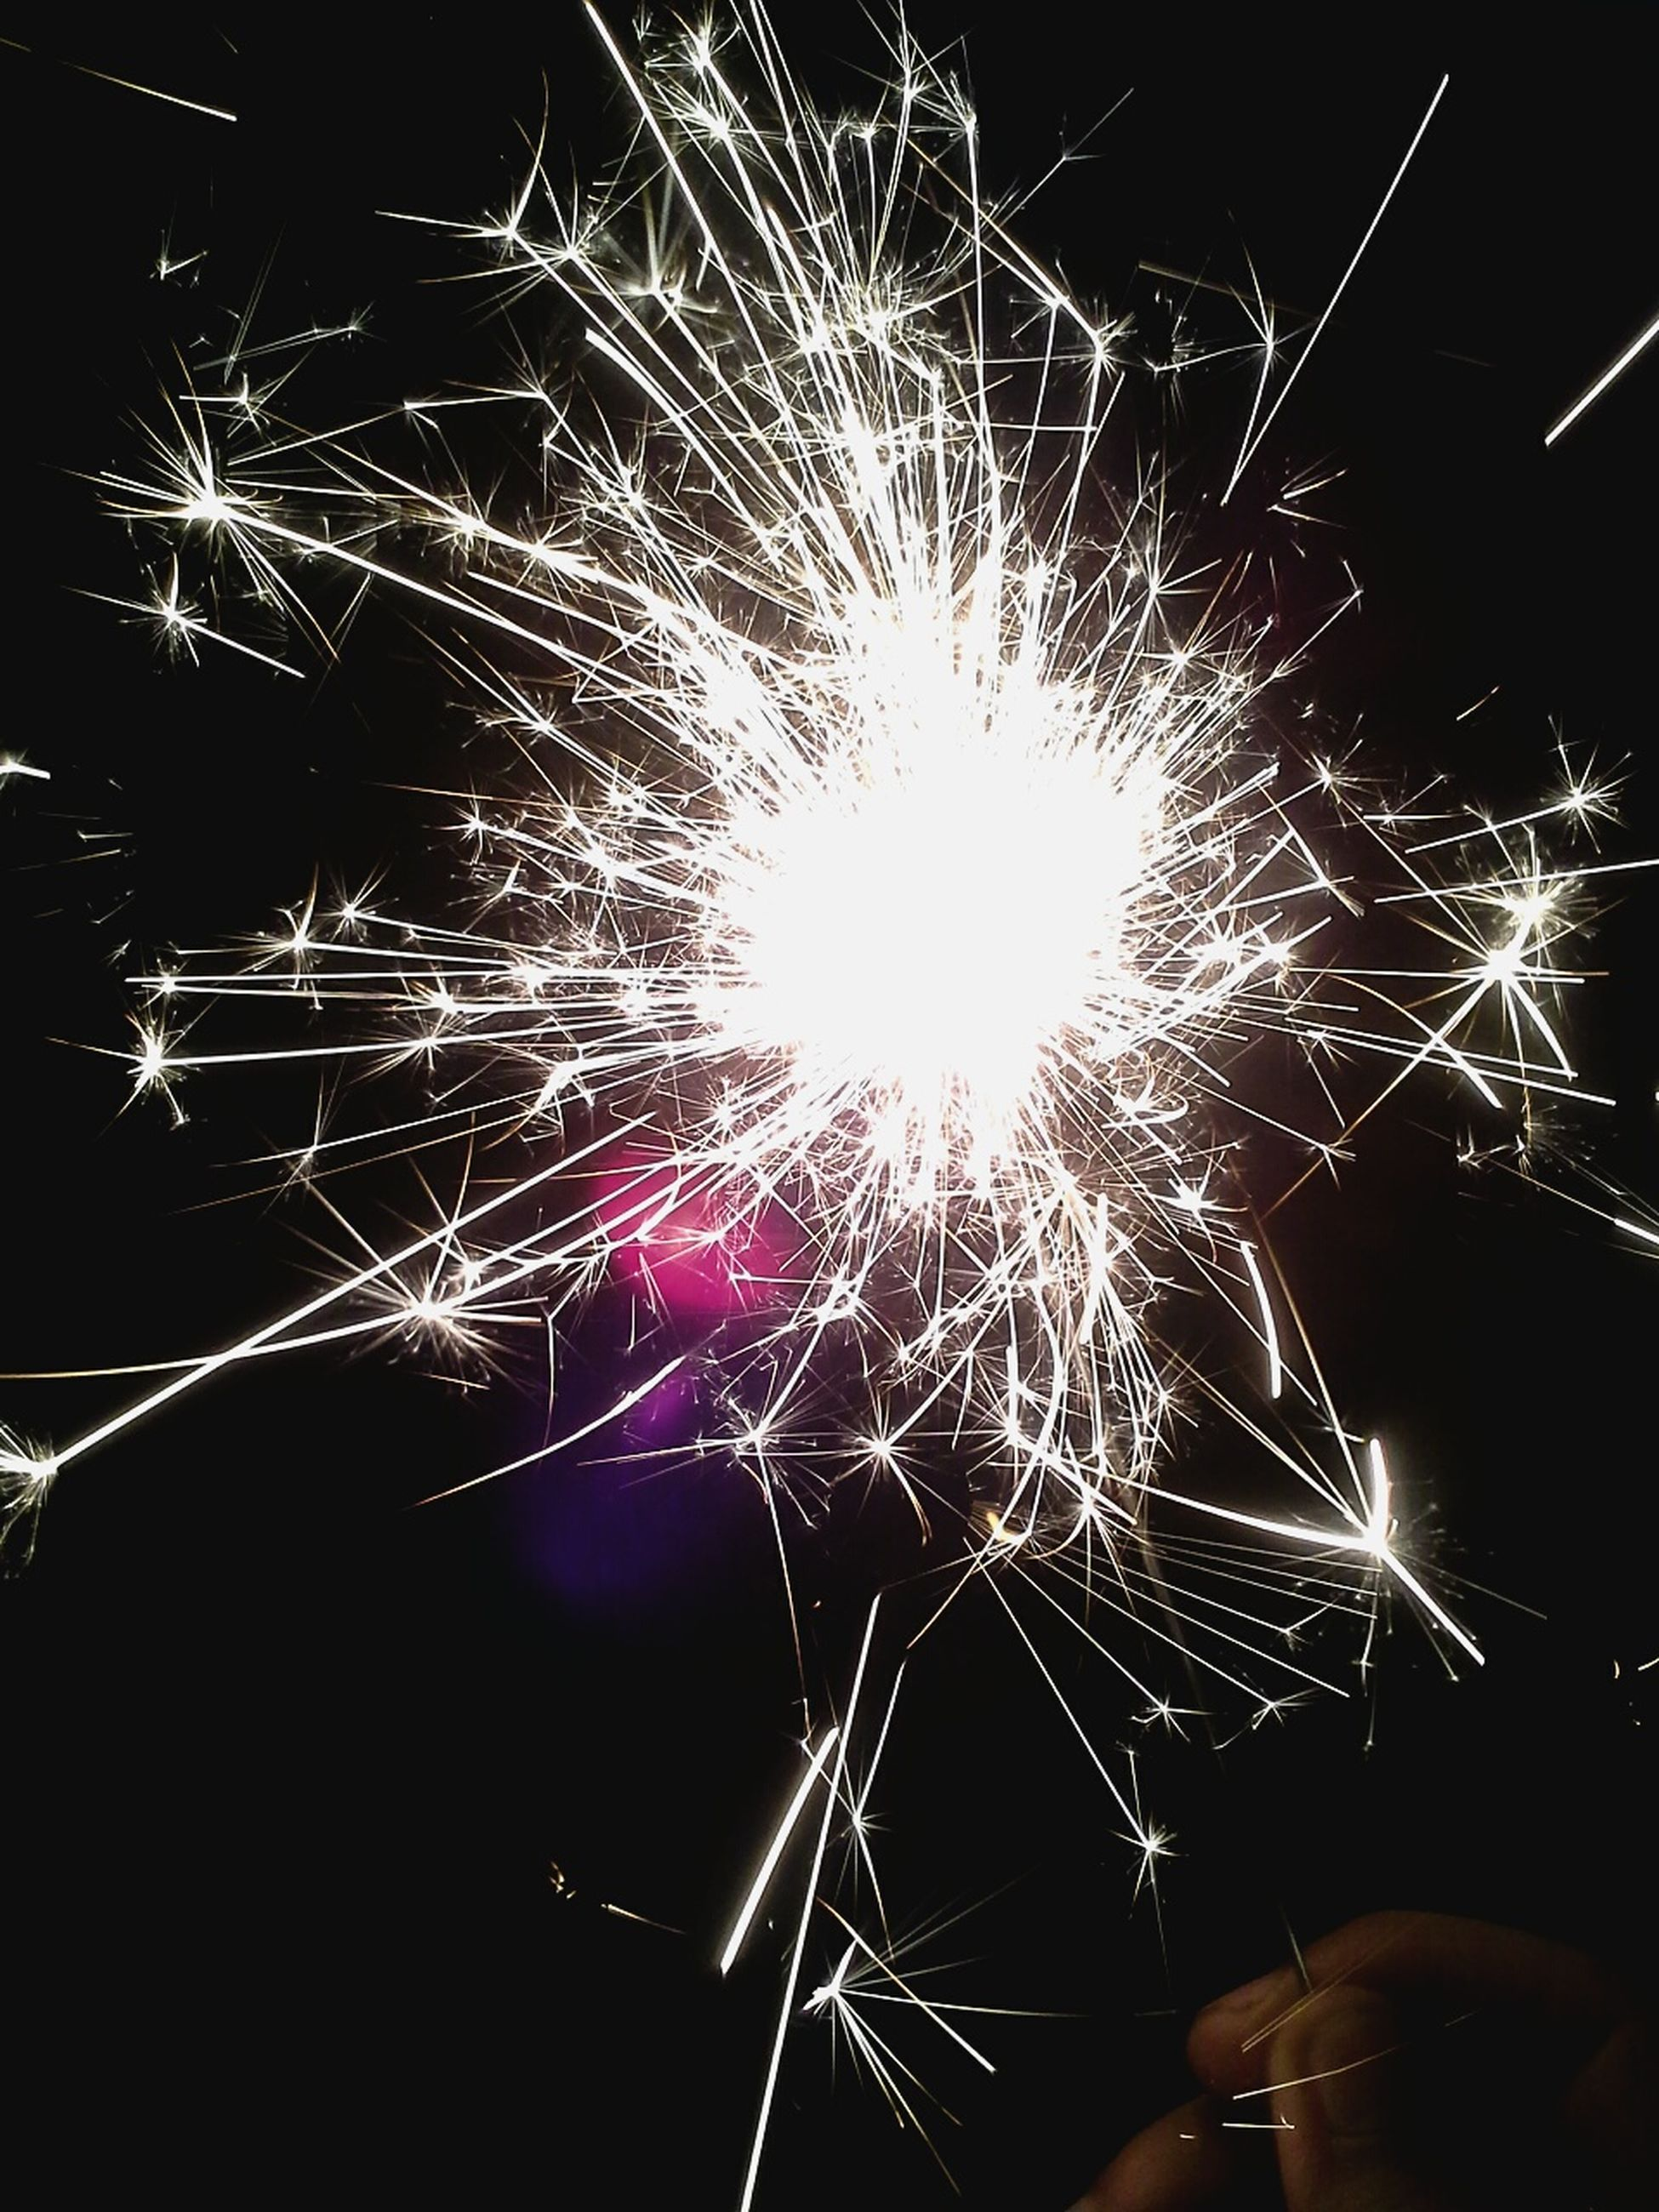 celebration, motion, exploding, long exposure, firework display, blurred motion, arts culture and entertainment, sparks, multi colored, firework - man made object, night, outdoors, no people, smoke - physical structure, sparkler, event, illuminated, sky, firework